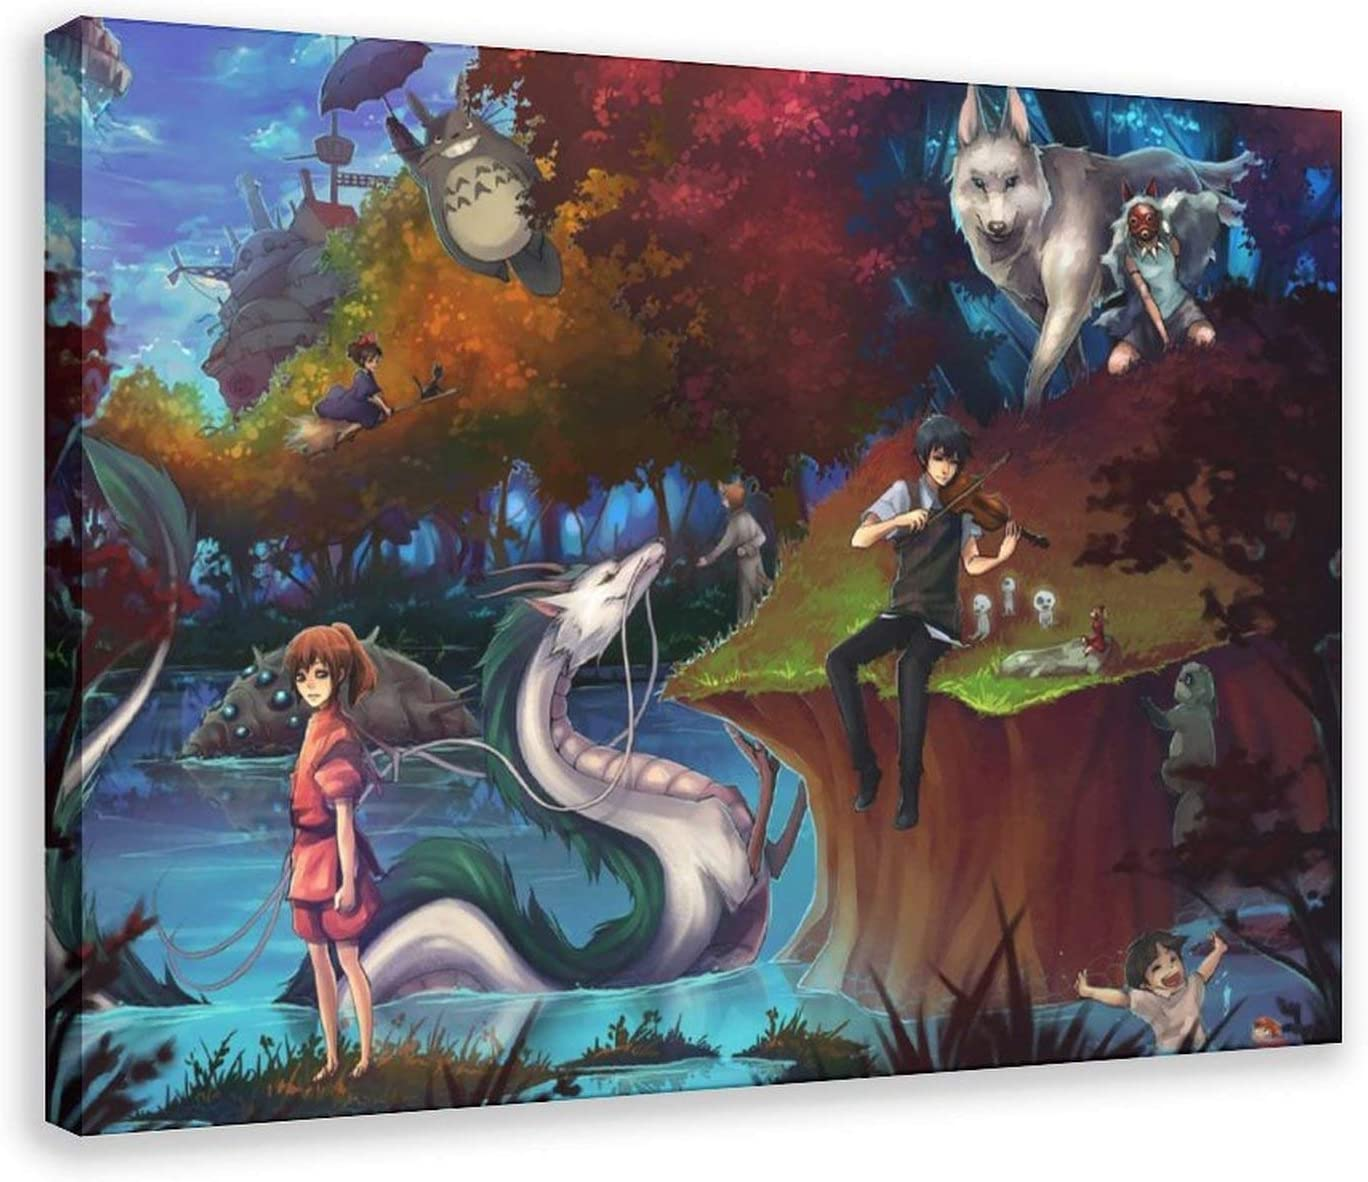 sold out Anime Indefinitely Poster Studio Ghibli Canvas Art Pi Decor Print Wall